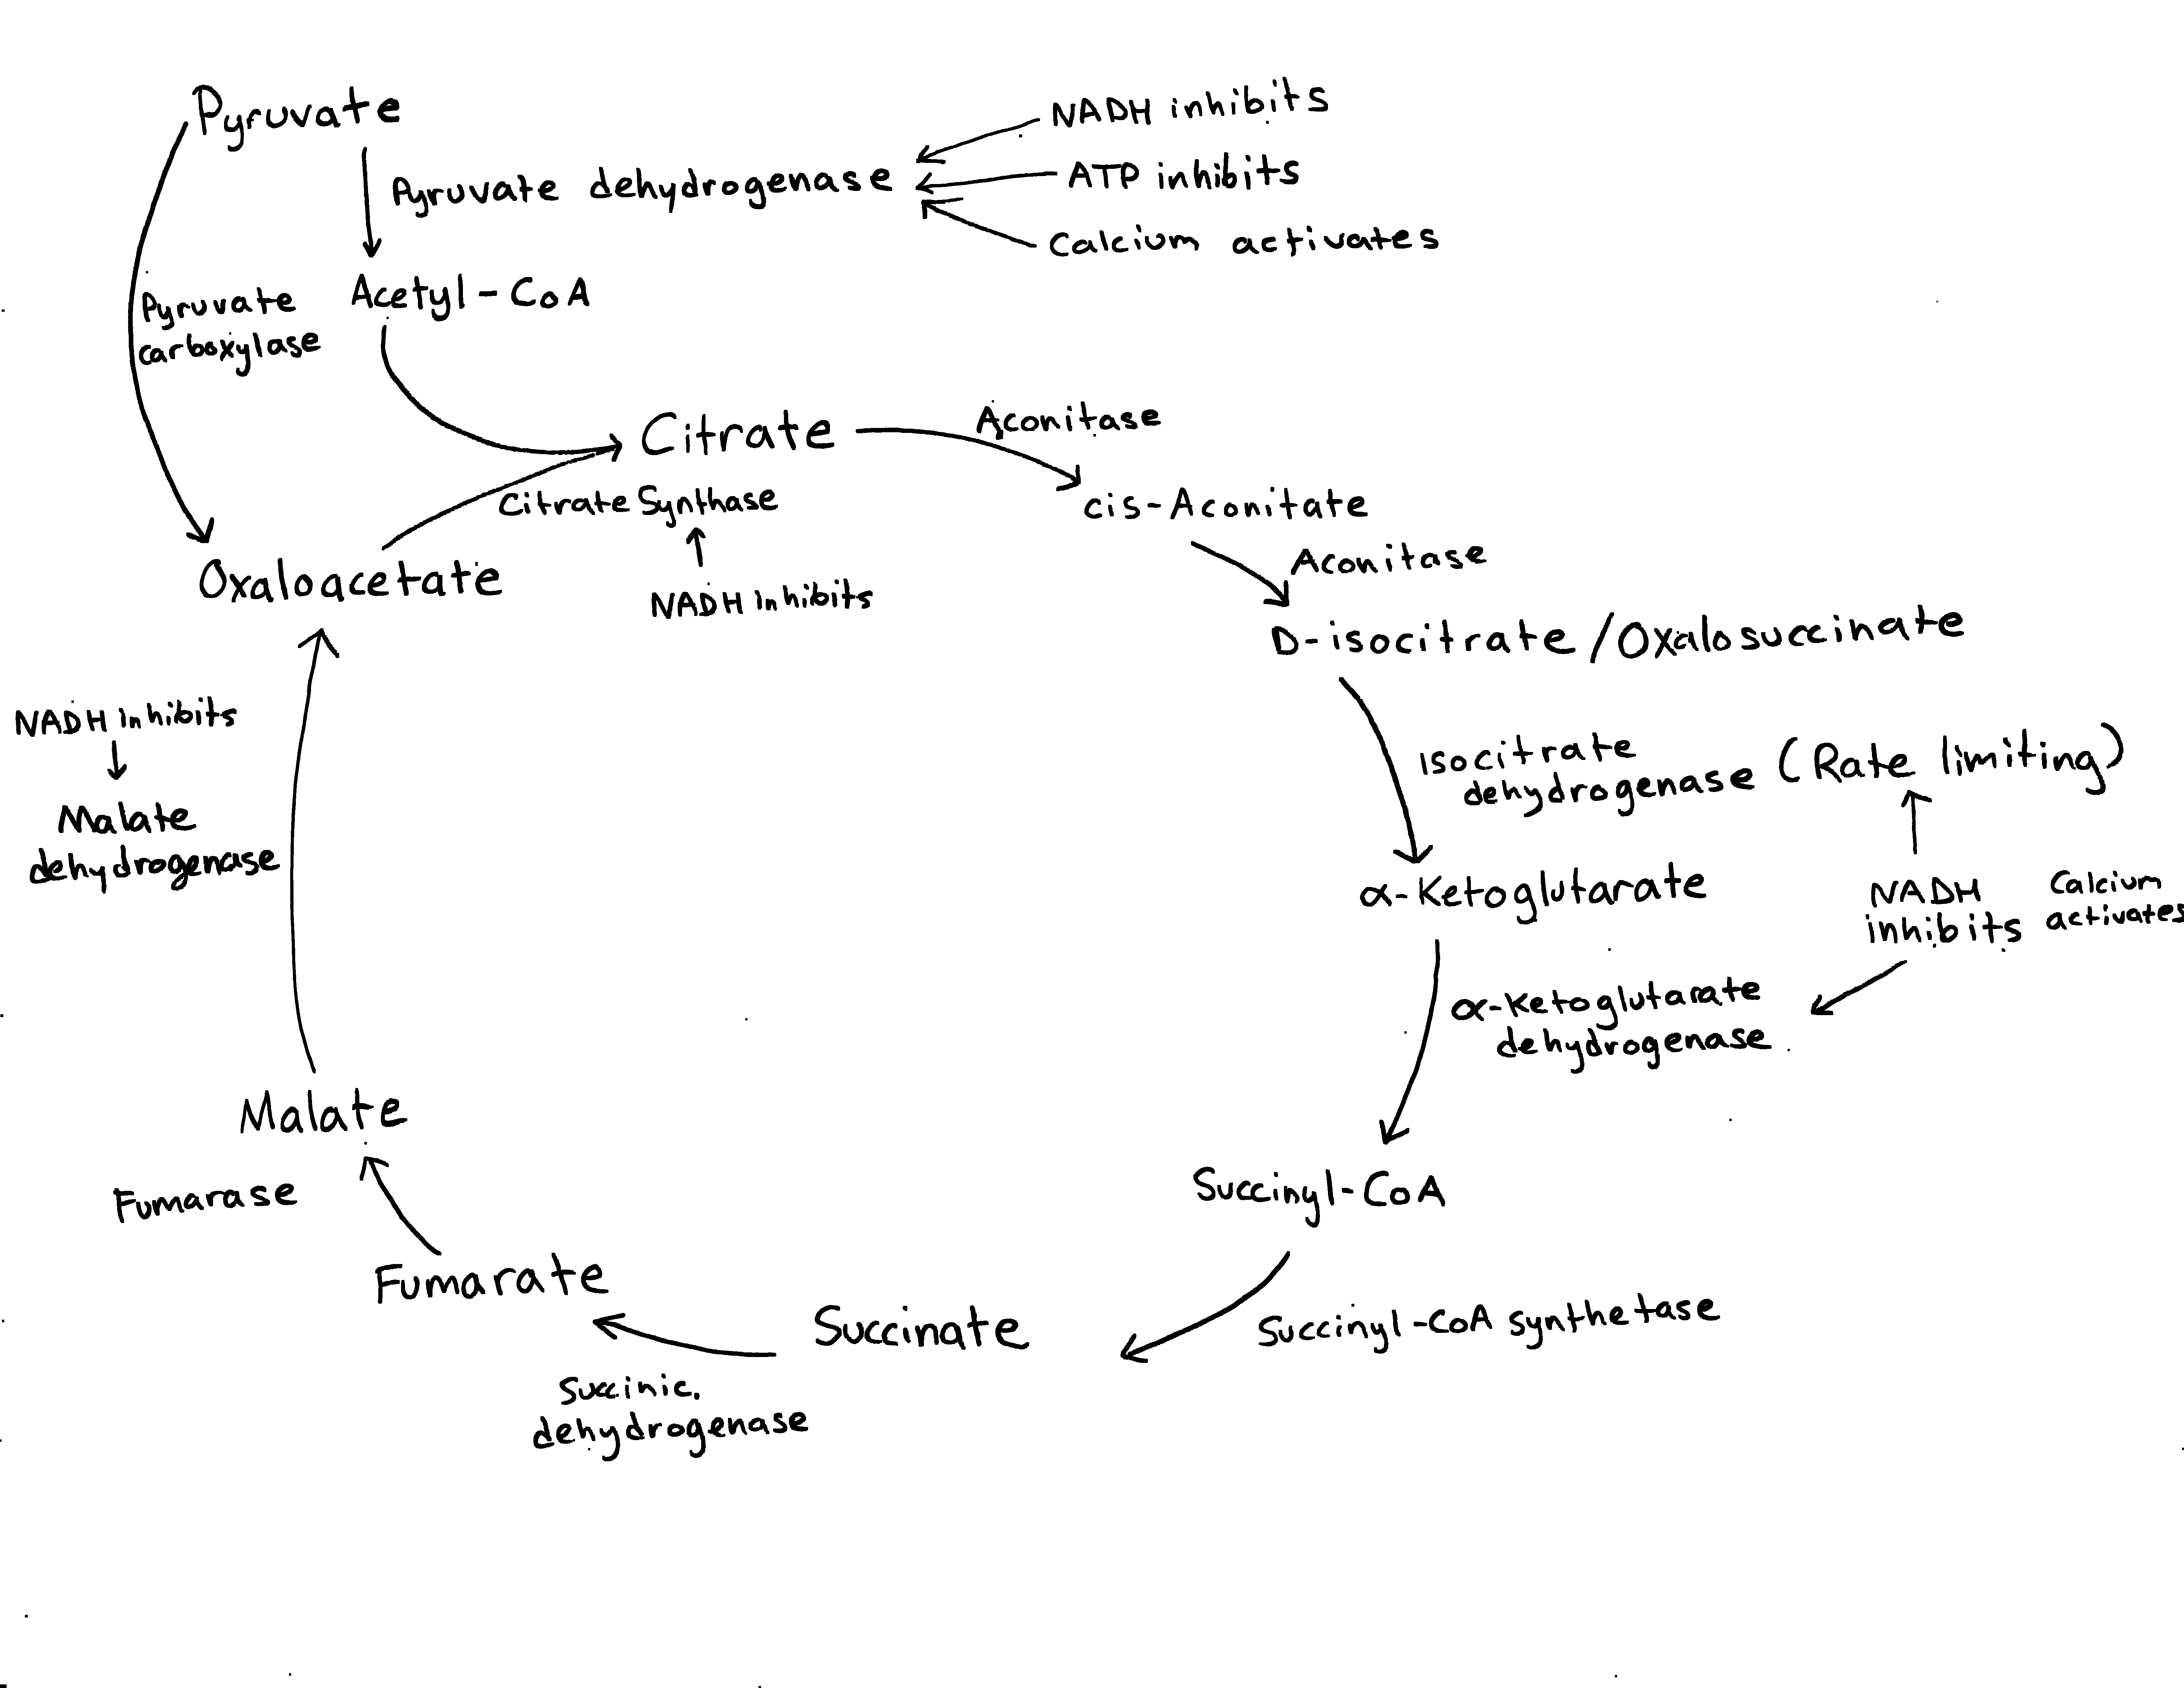 the image shows the krebs cycle with only enzymes and their regulating  molecules represented  more